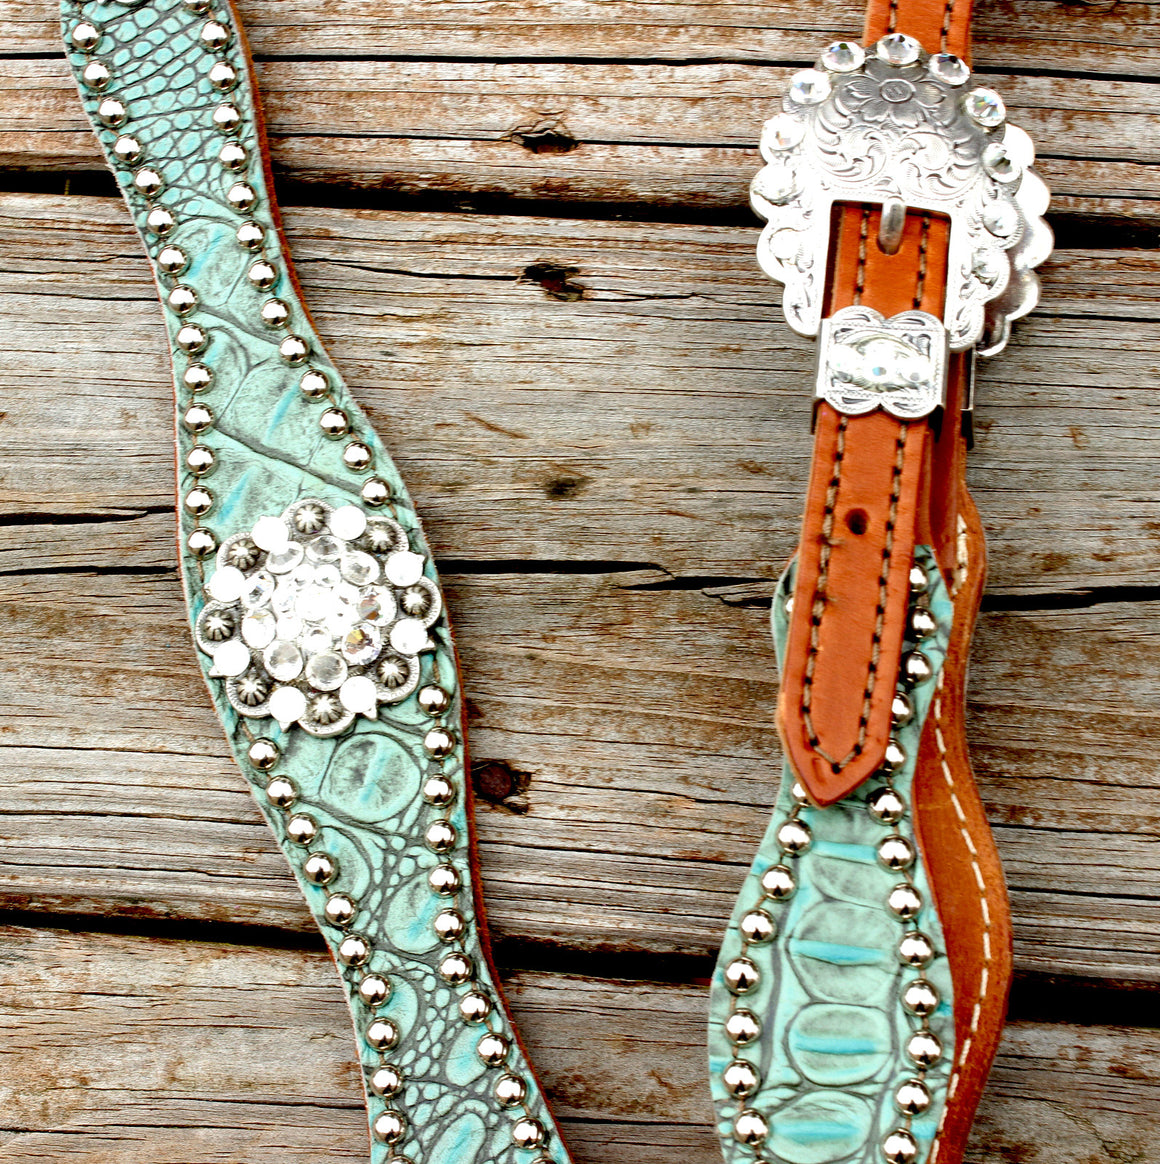 Antique Teal Gator/Tan Leather One Ear Tack Set w/Clear Crystal Rhinestone Conchos